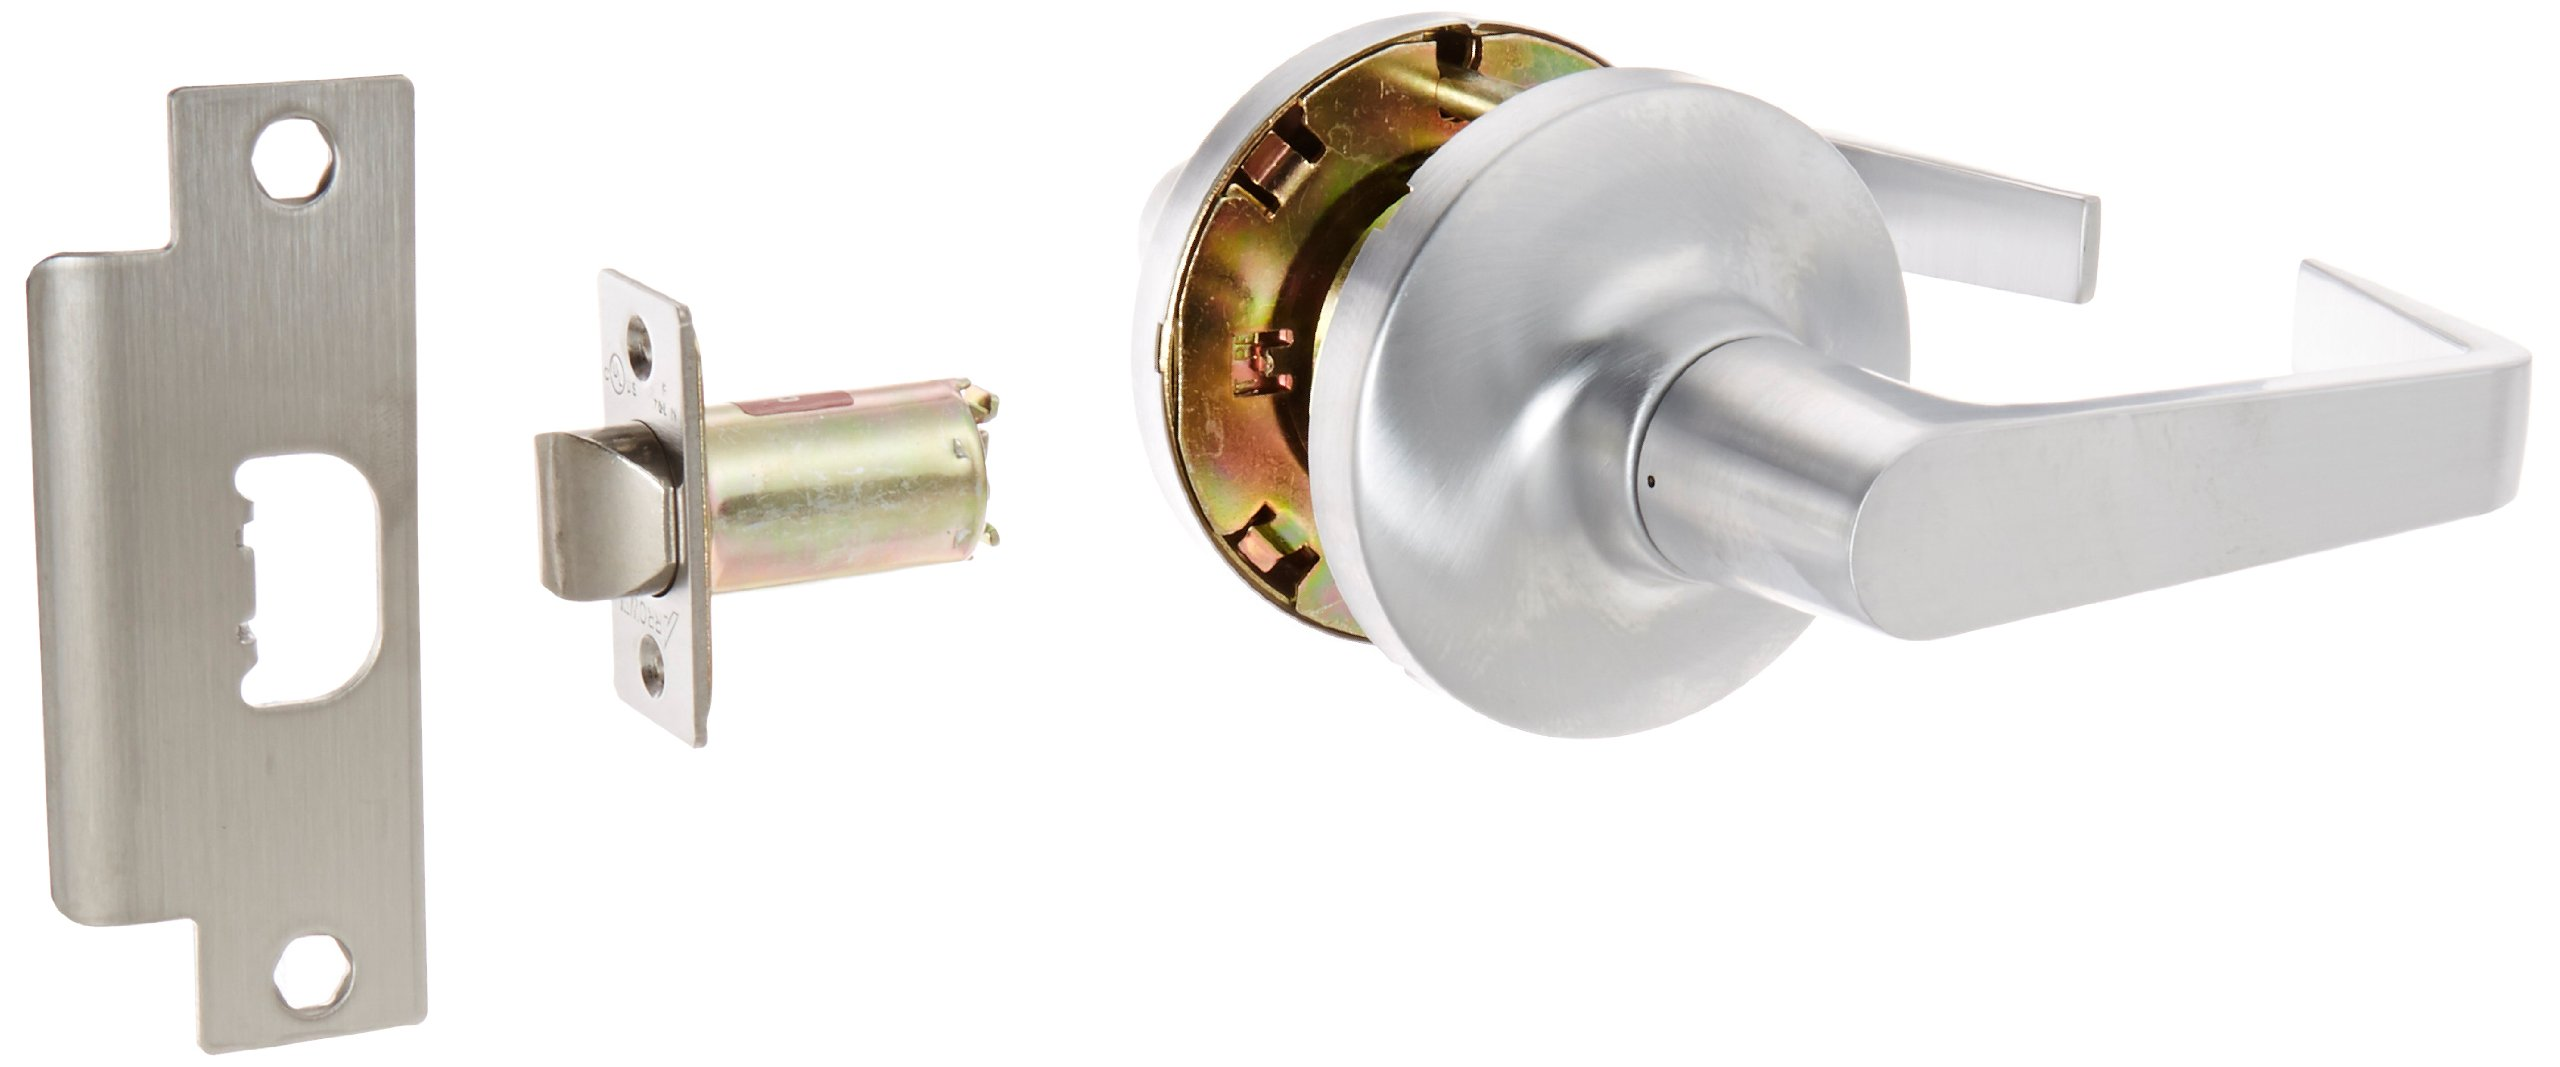 Arrow Lock GL Series Grade 1 Satin Chromium Plated Passage Cylindrical Lever Lock, 1-3/8'' to 2'' Door Thickness (Pack of 1)